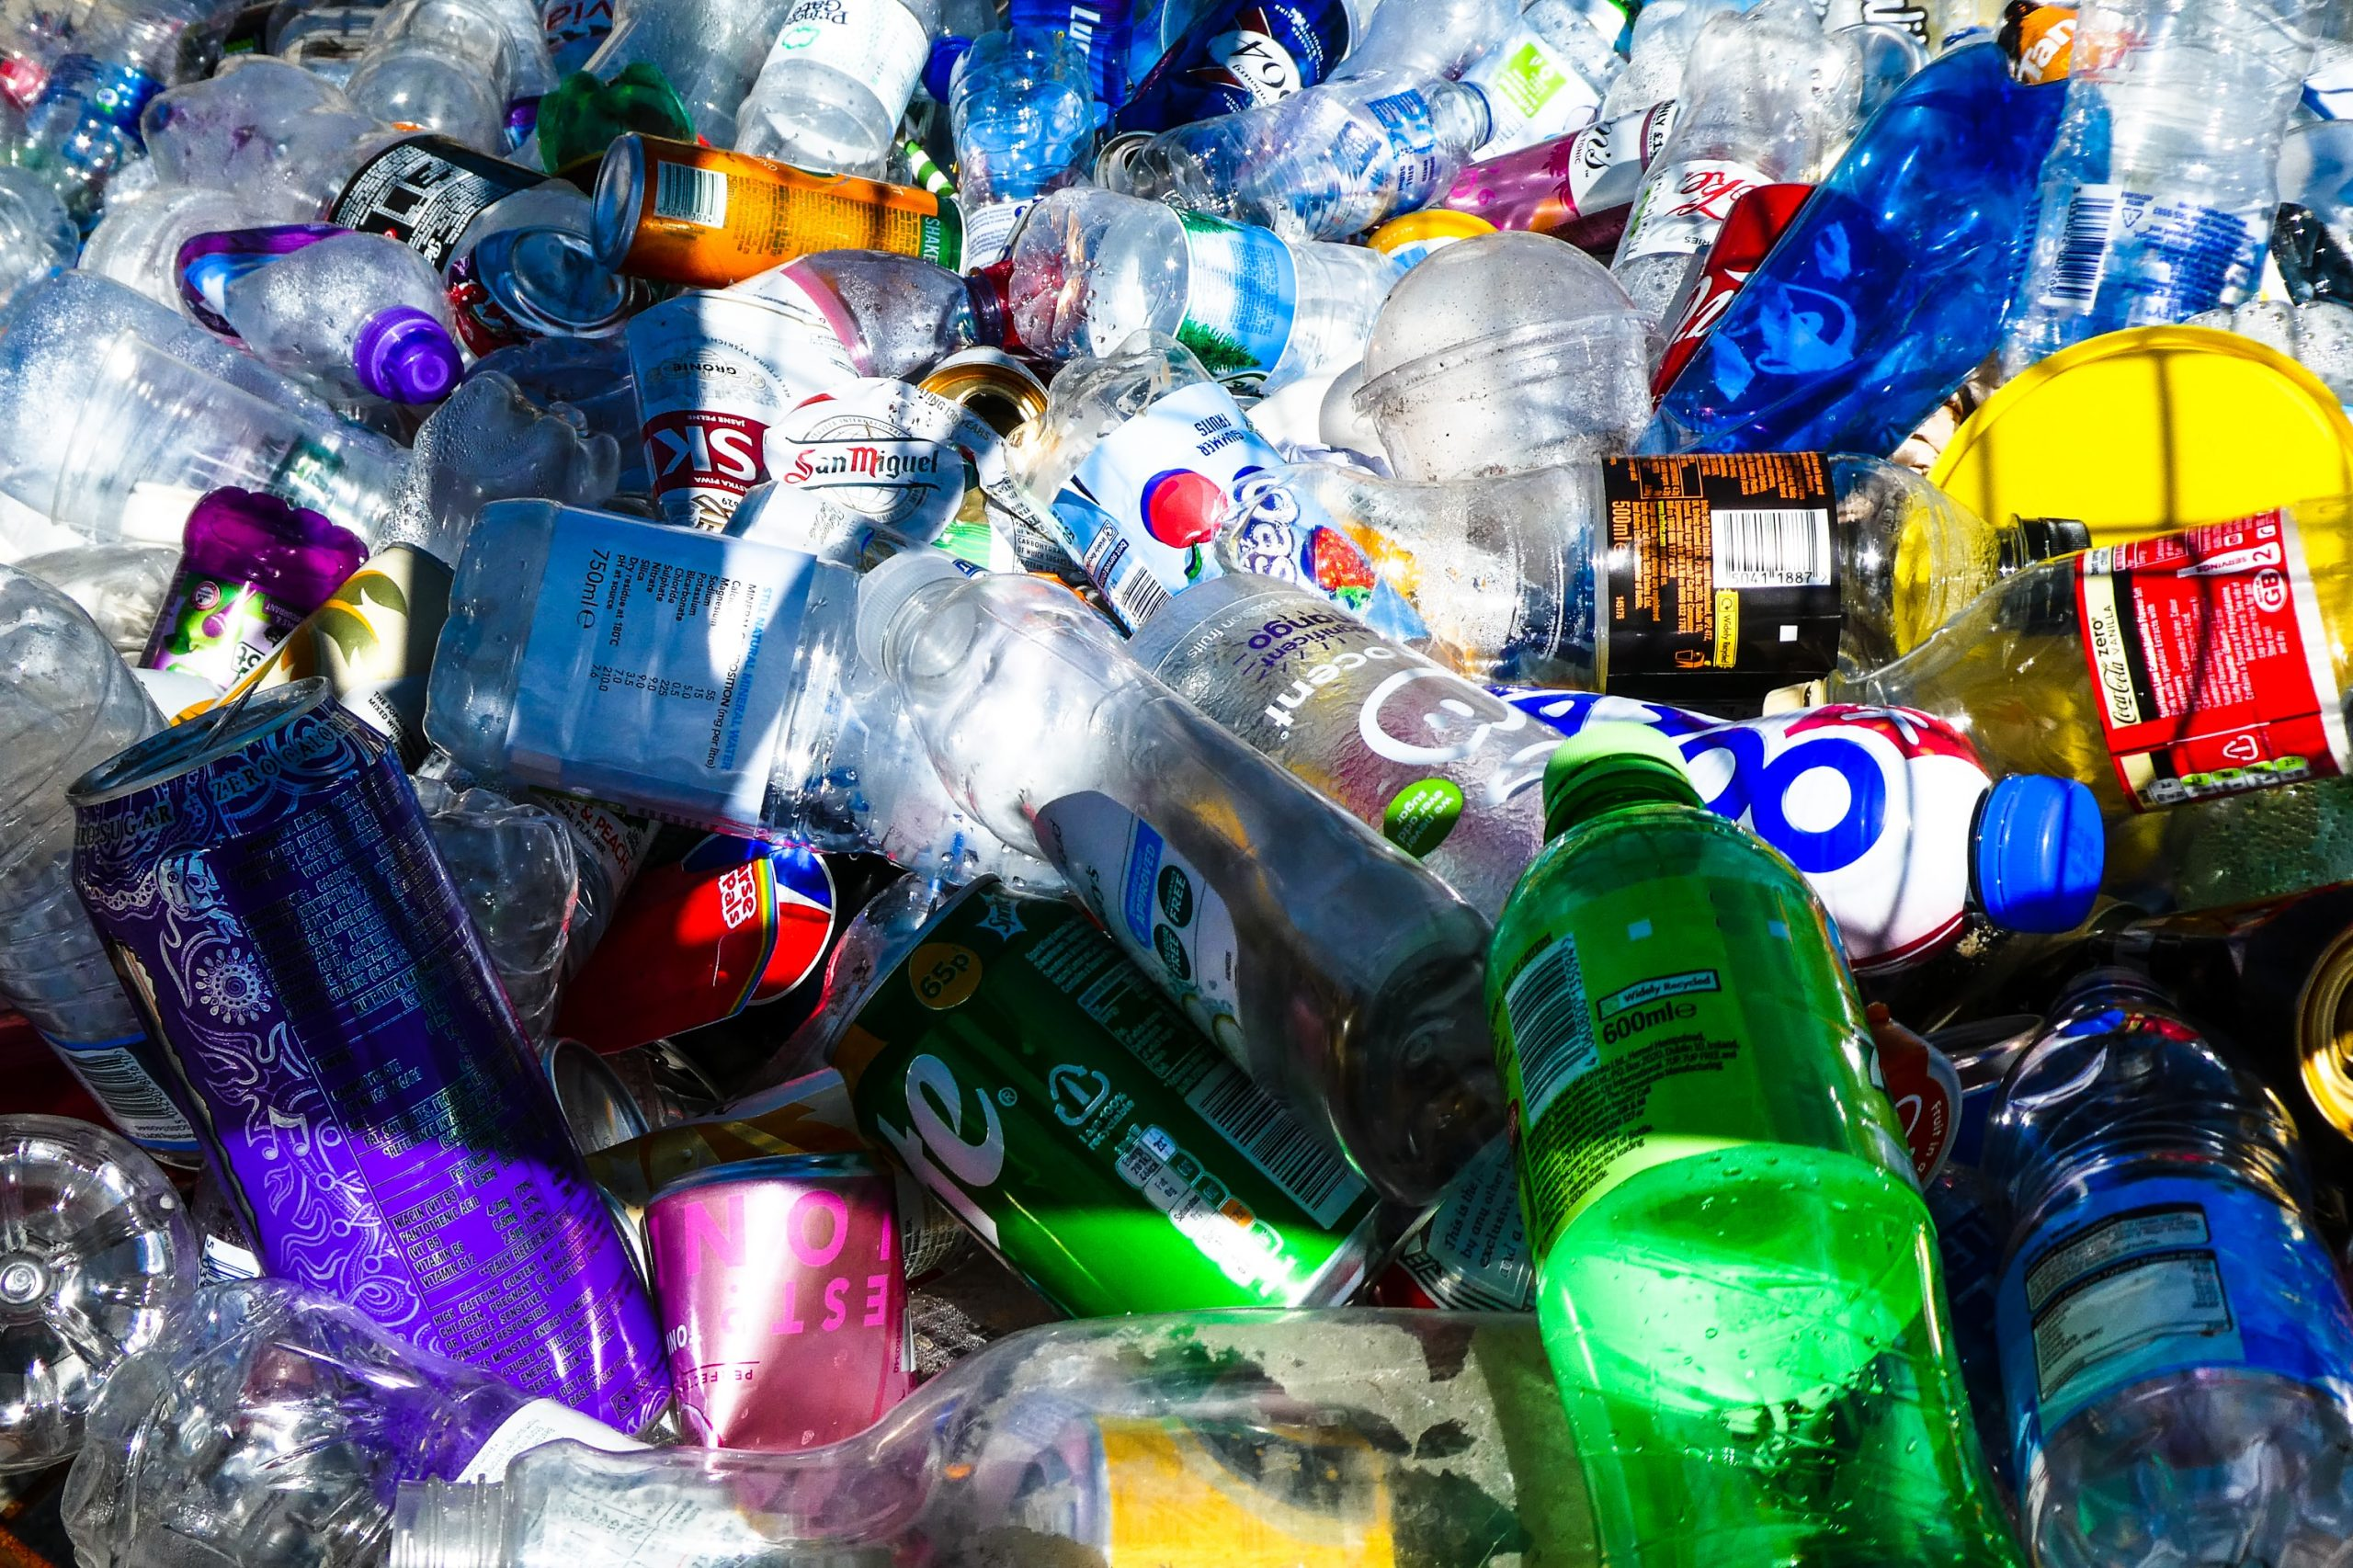 4 ways businesses can reduce plastic usage